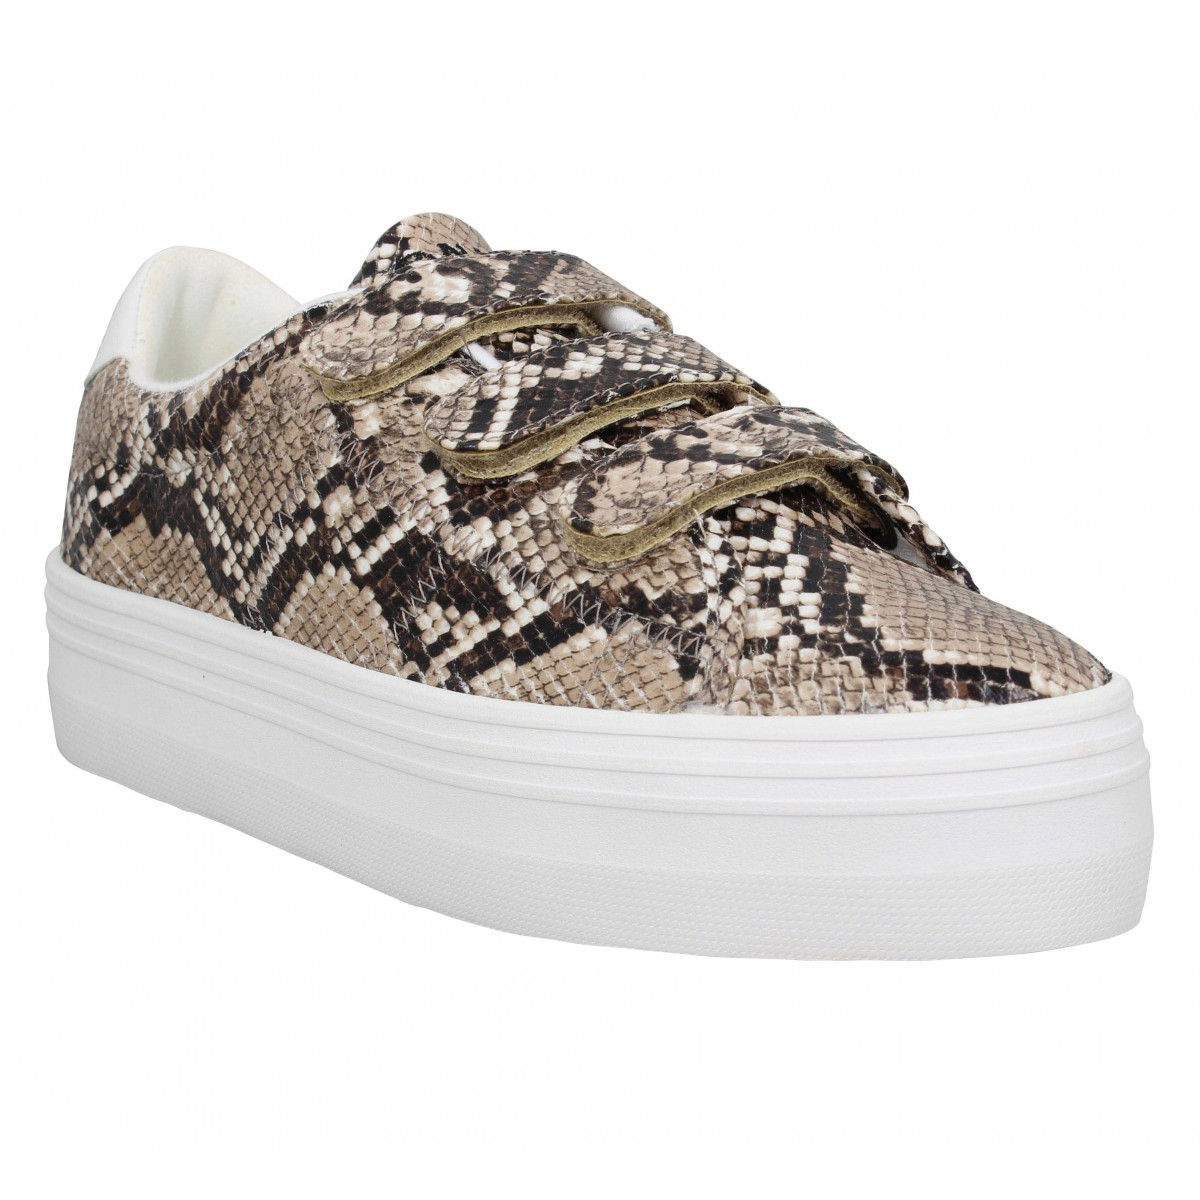 Baskets NO NAME Plato Straps print Femme Anaconda